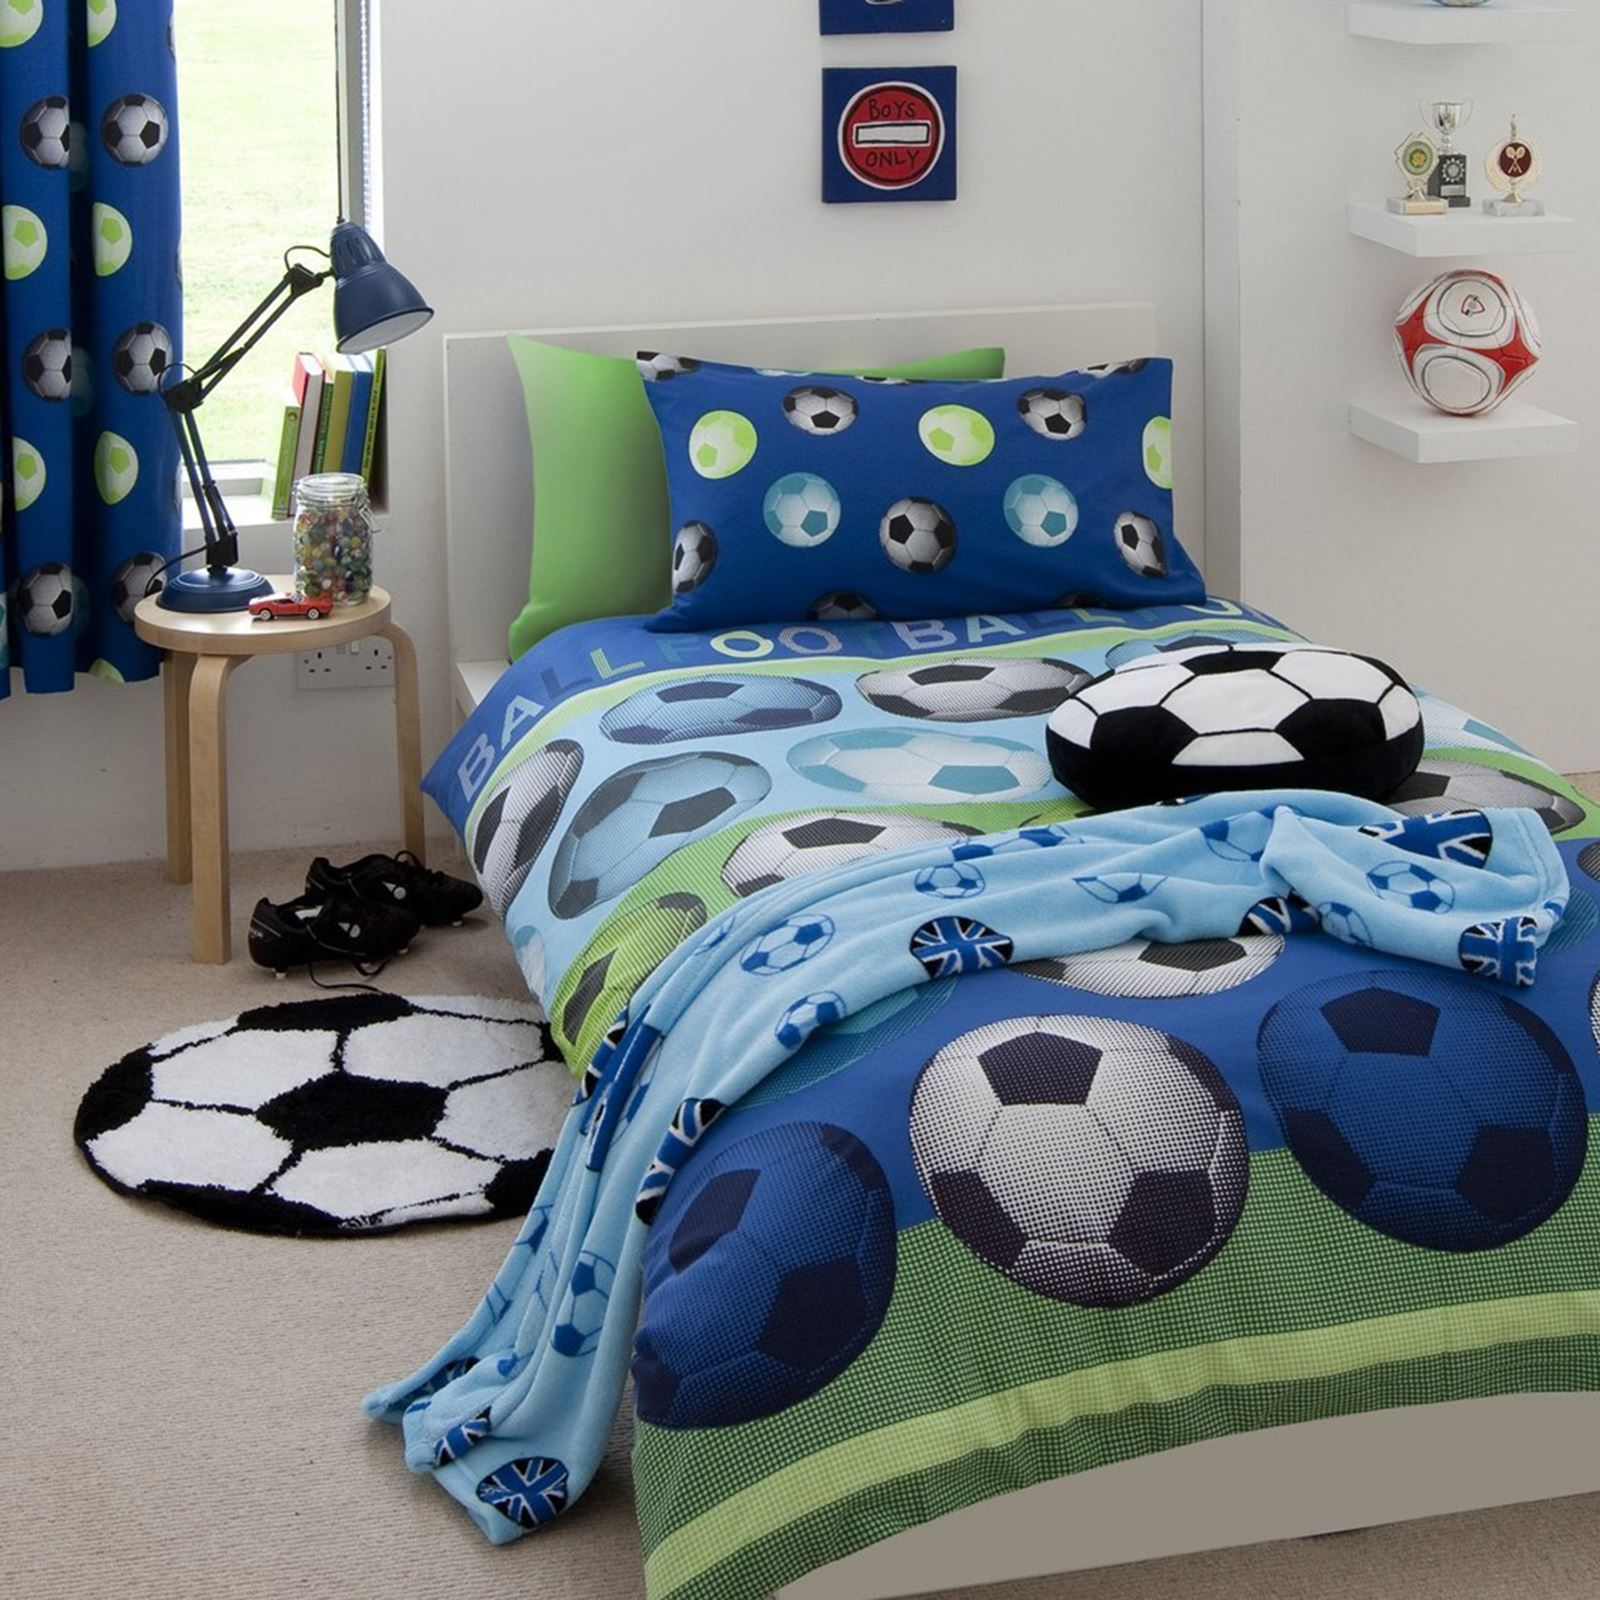 Details about CATHERINE LANSFIELD FOOTBALL SINGLE & DOUBLE DUVET COVERS RED  BLUE KIDS BEDDING